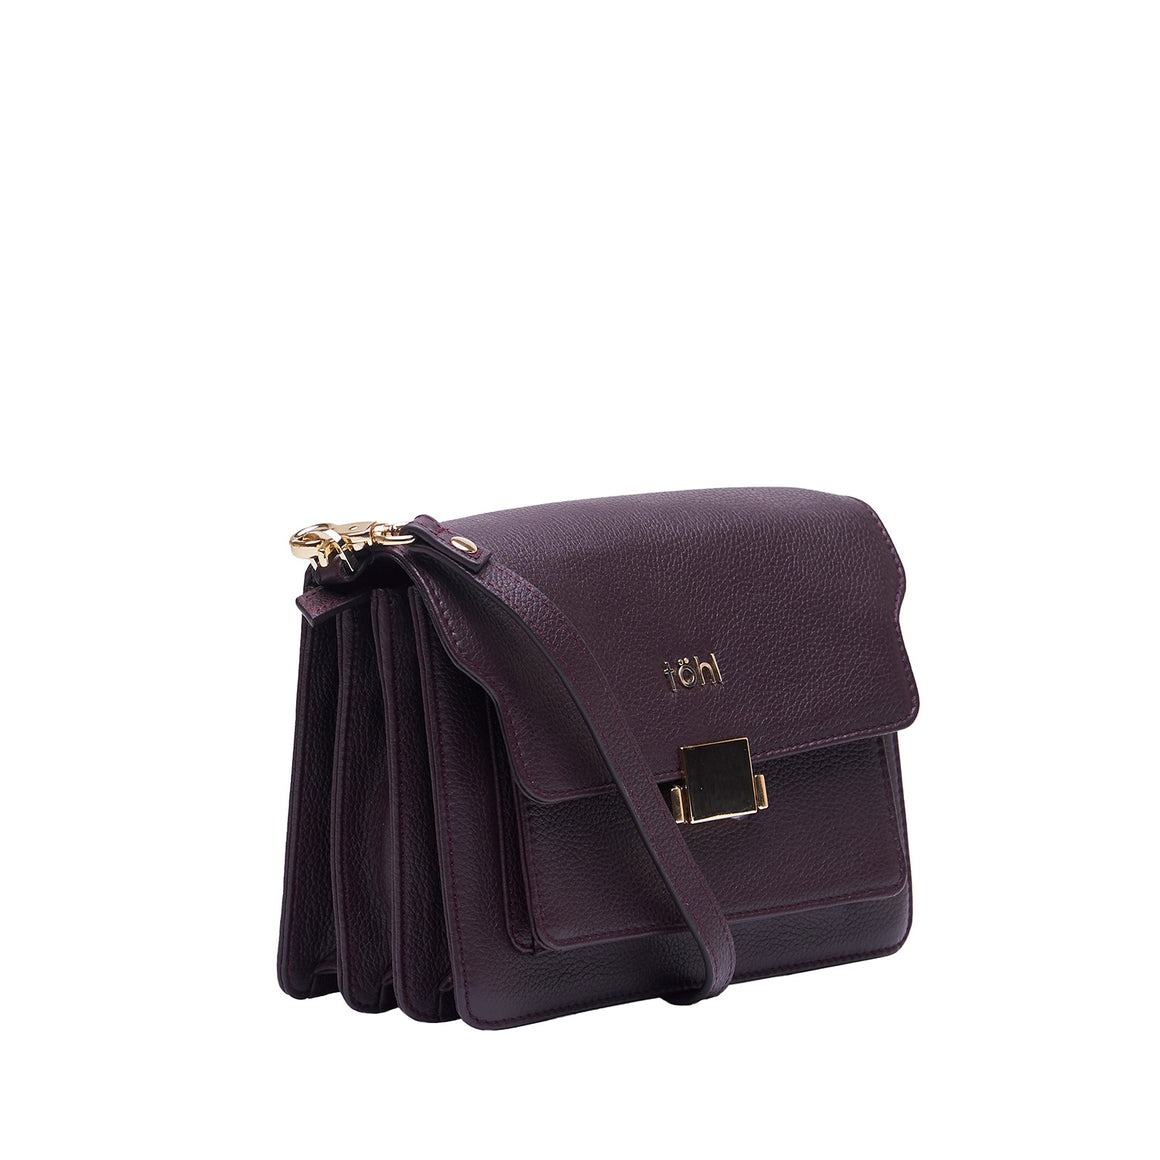 SG 0019 - TOHL CAMOMILE WOMEN'S SLING & CROSSBODY BAG - PLUM